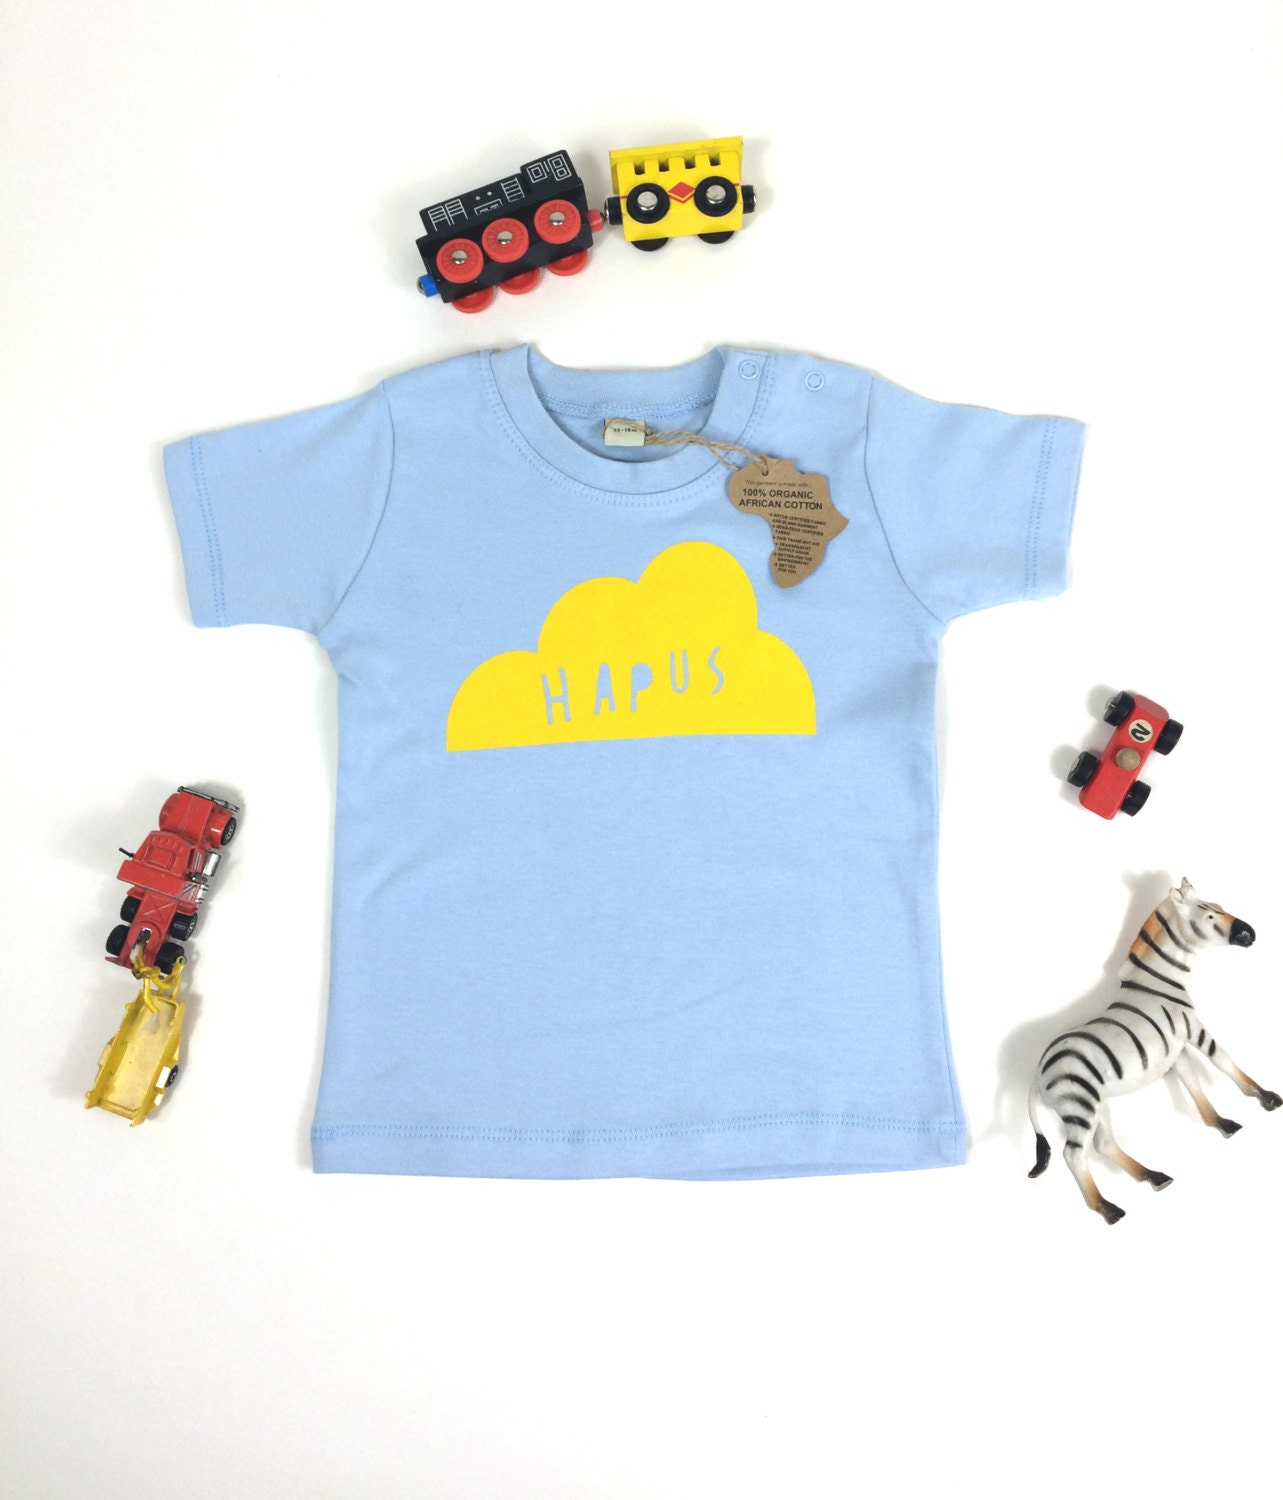 SALE Baby Clothes Dusty Blue T shirt Welsh Text Hapus Happy Cloud Yellow